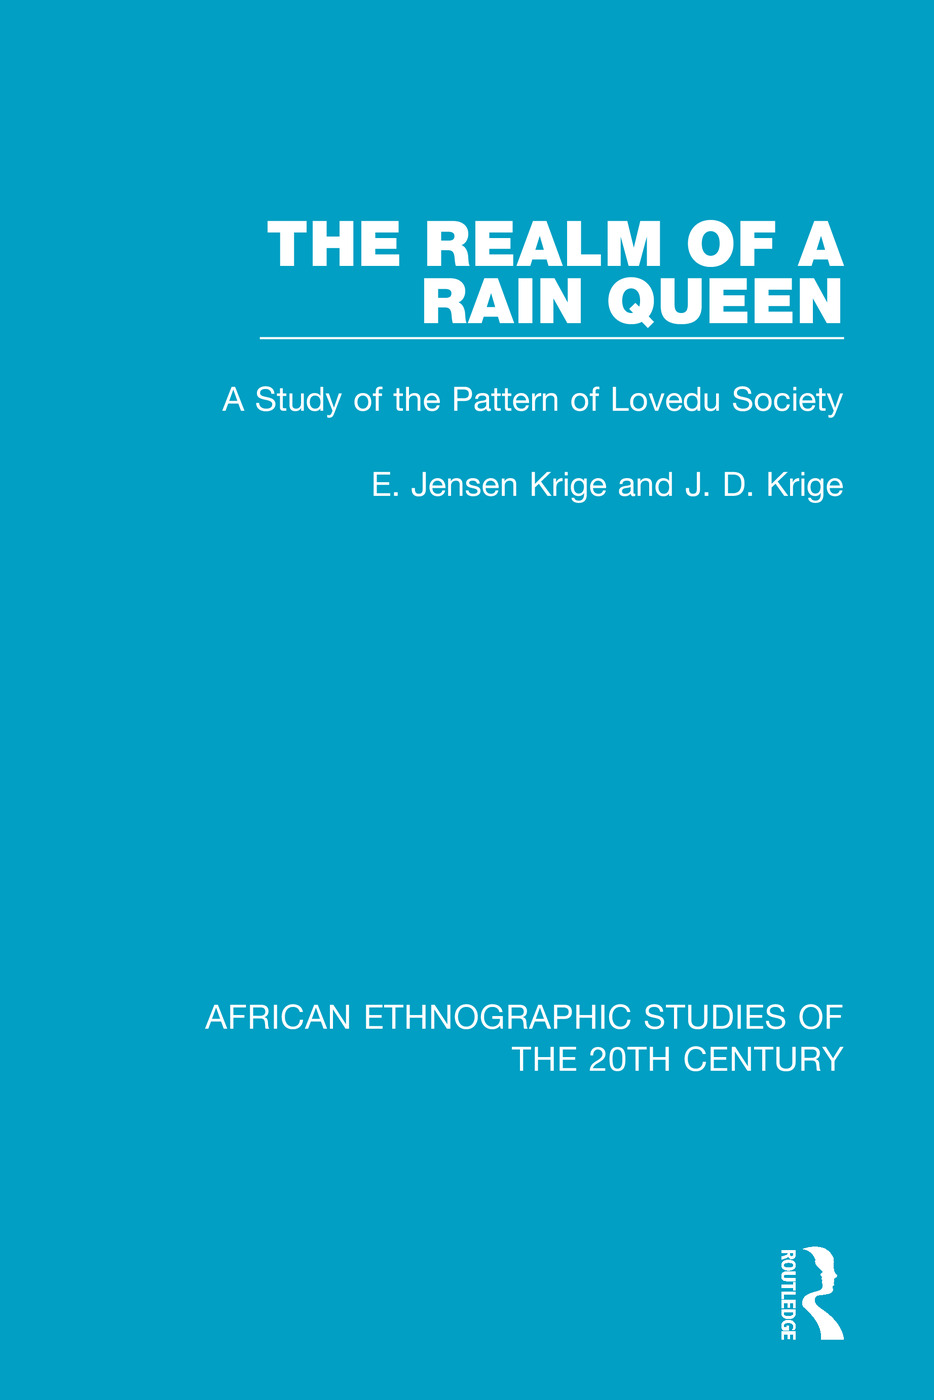 The Realm of a Rain Queen